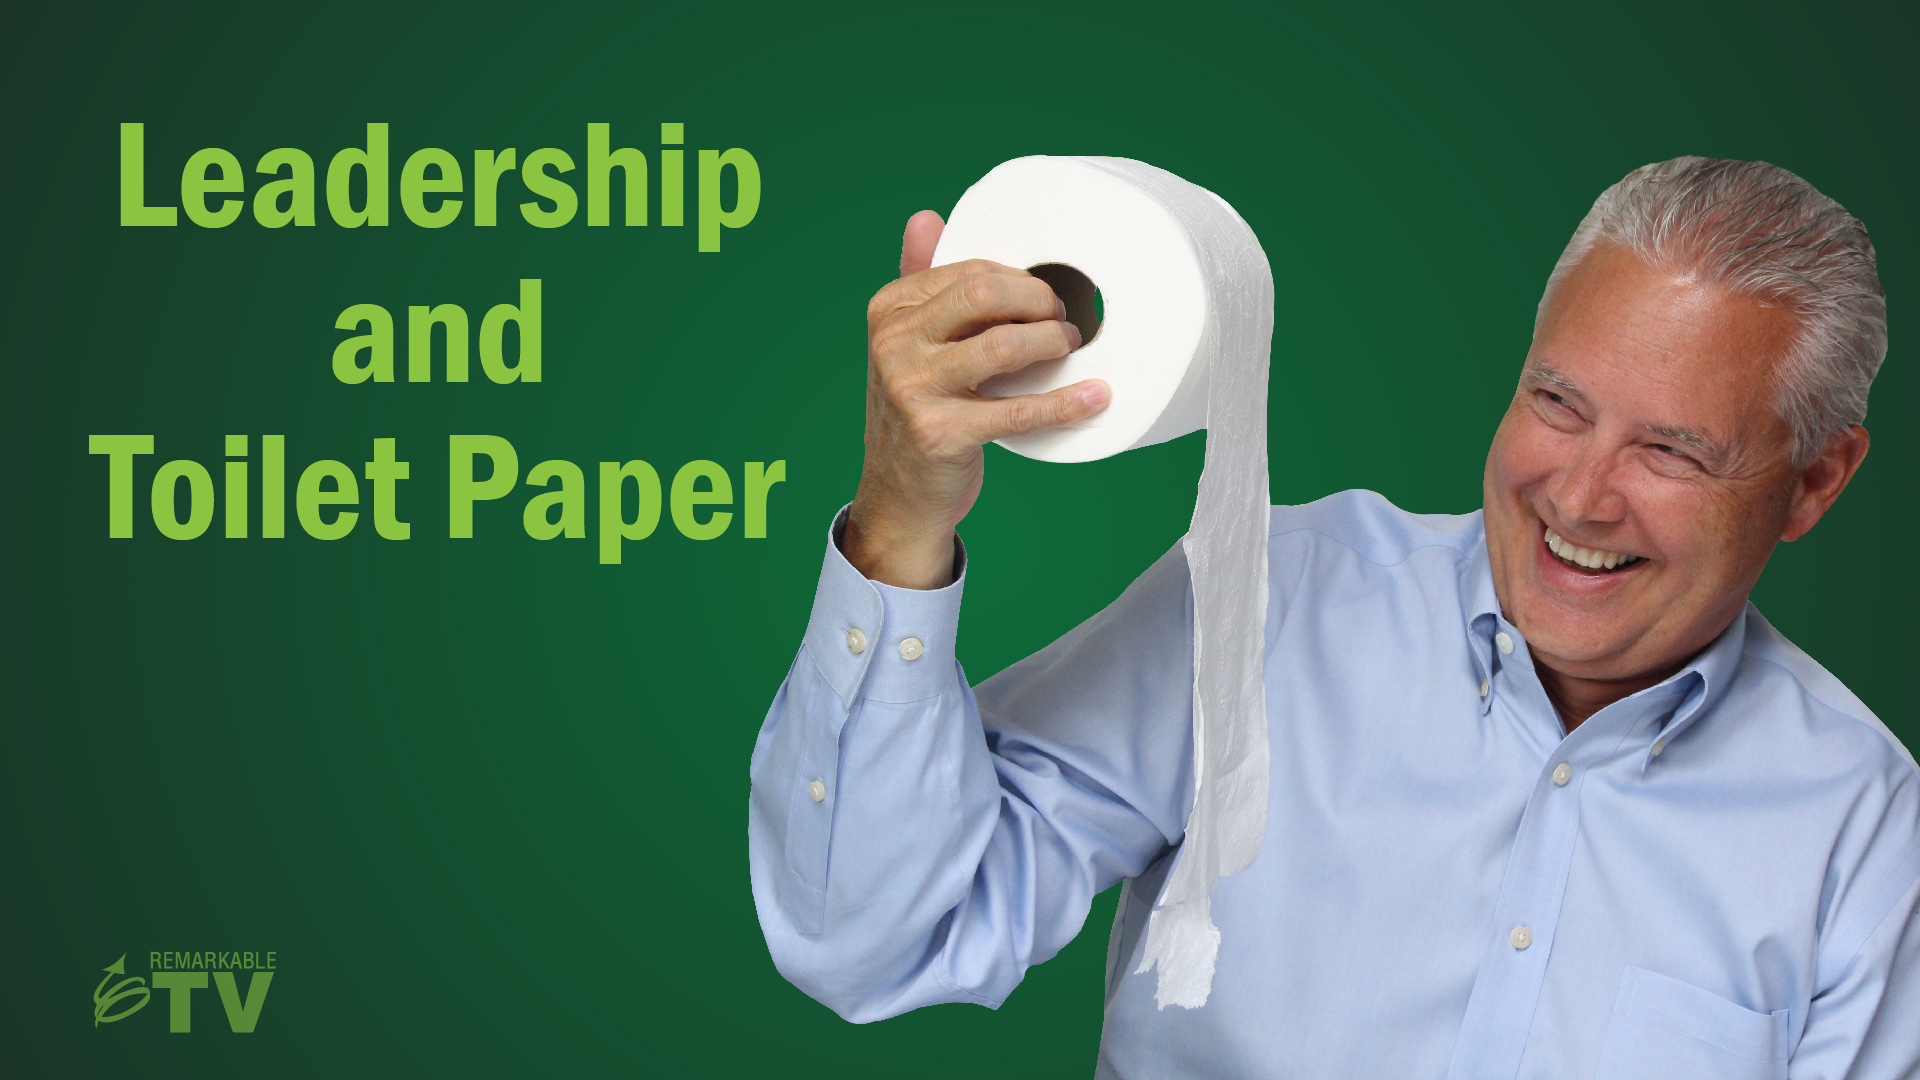 Leadership and Toilet Paper